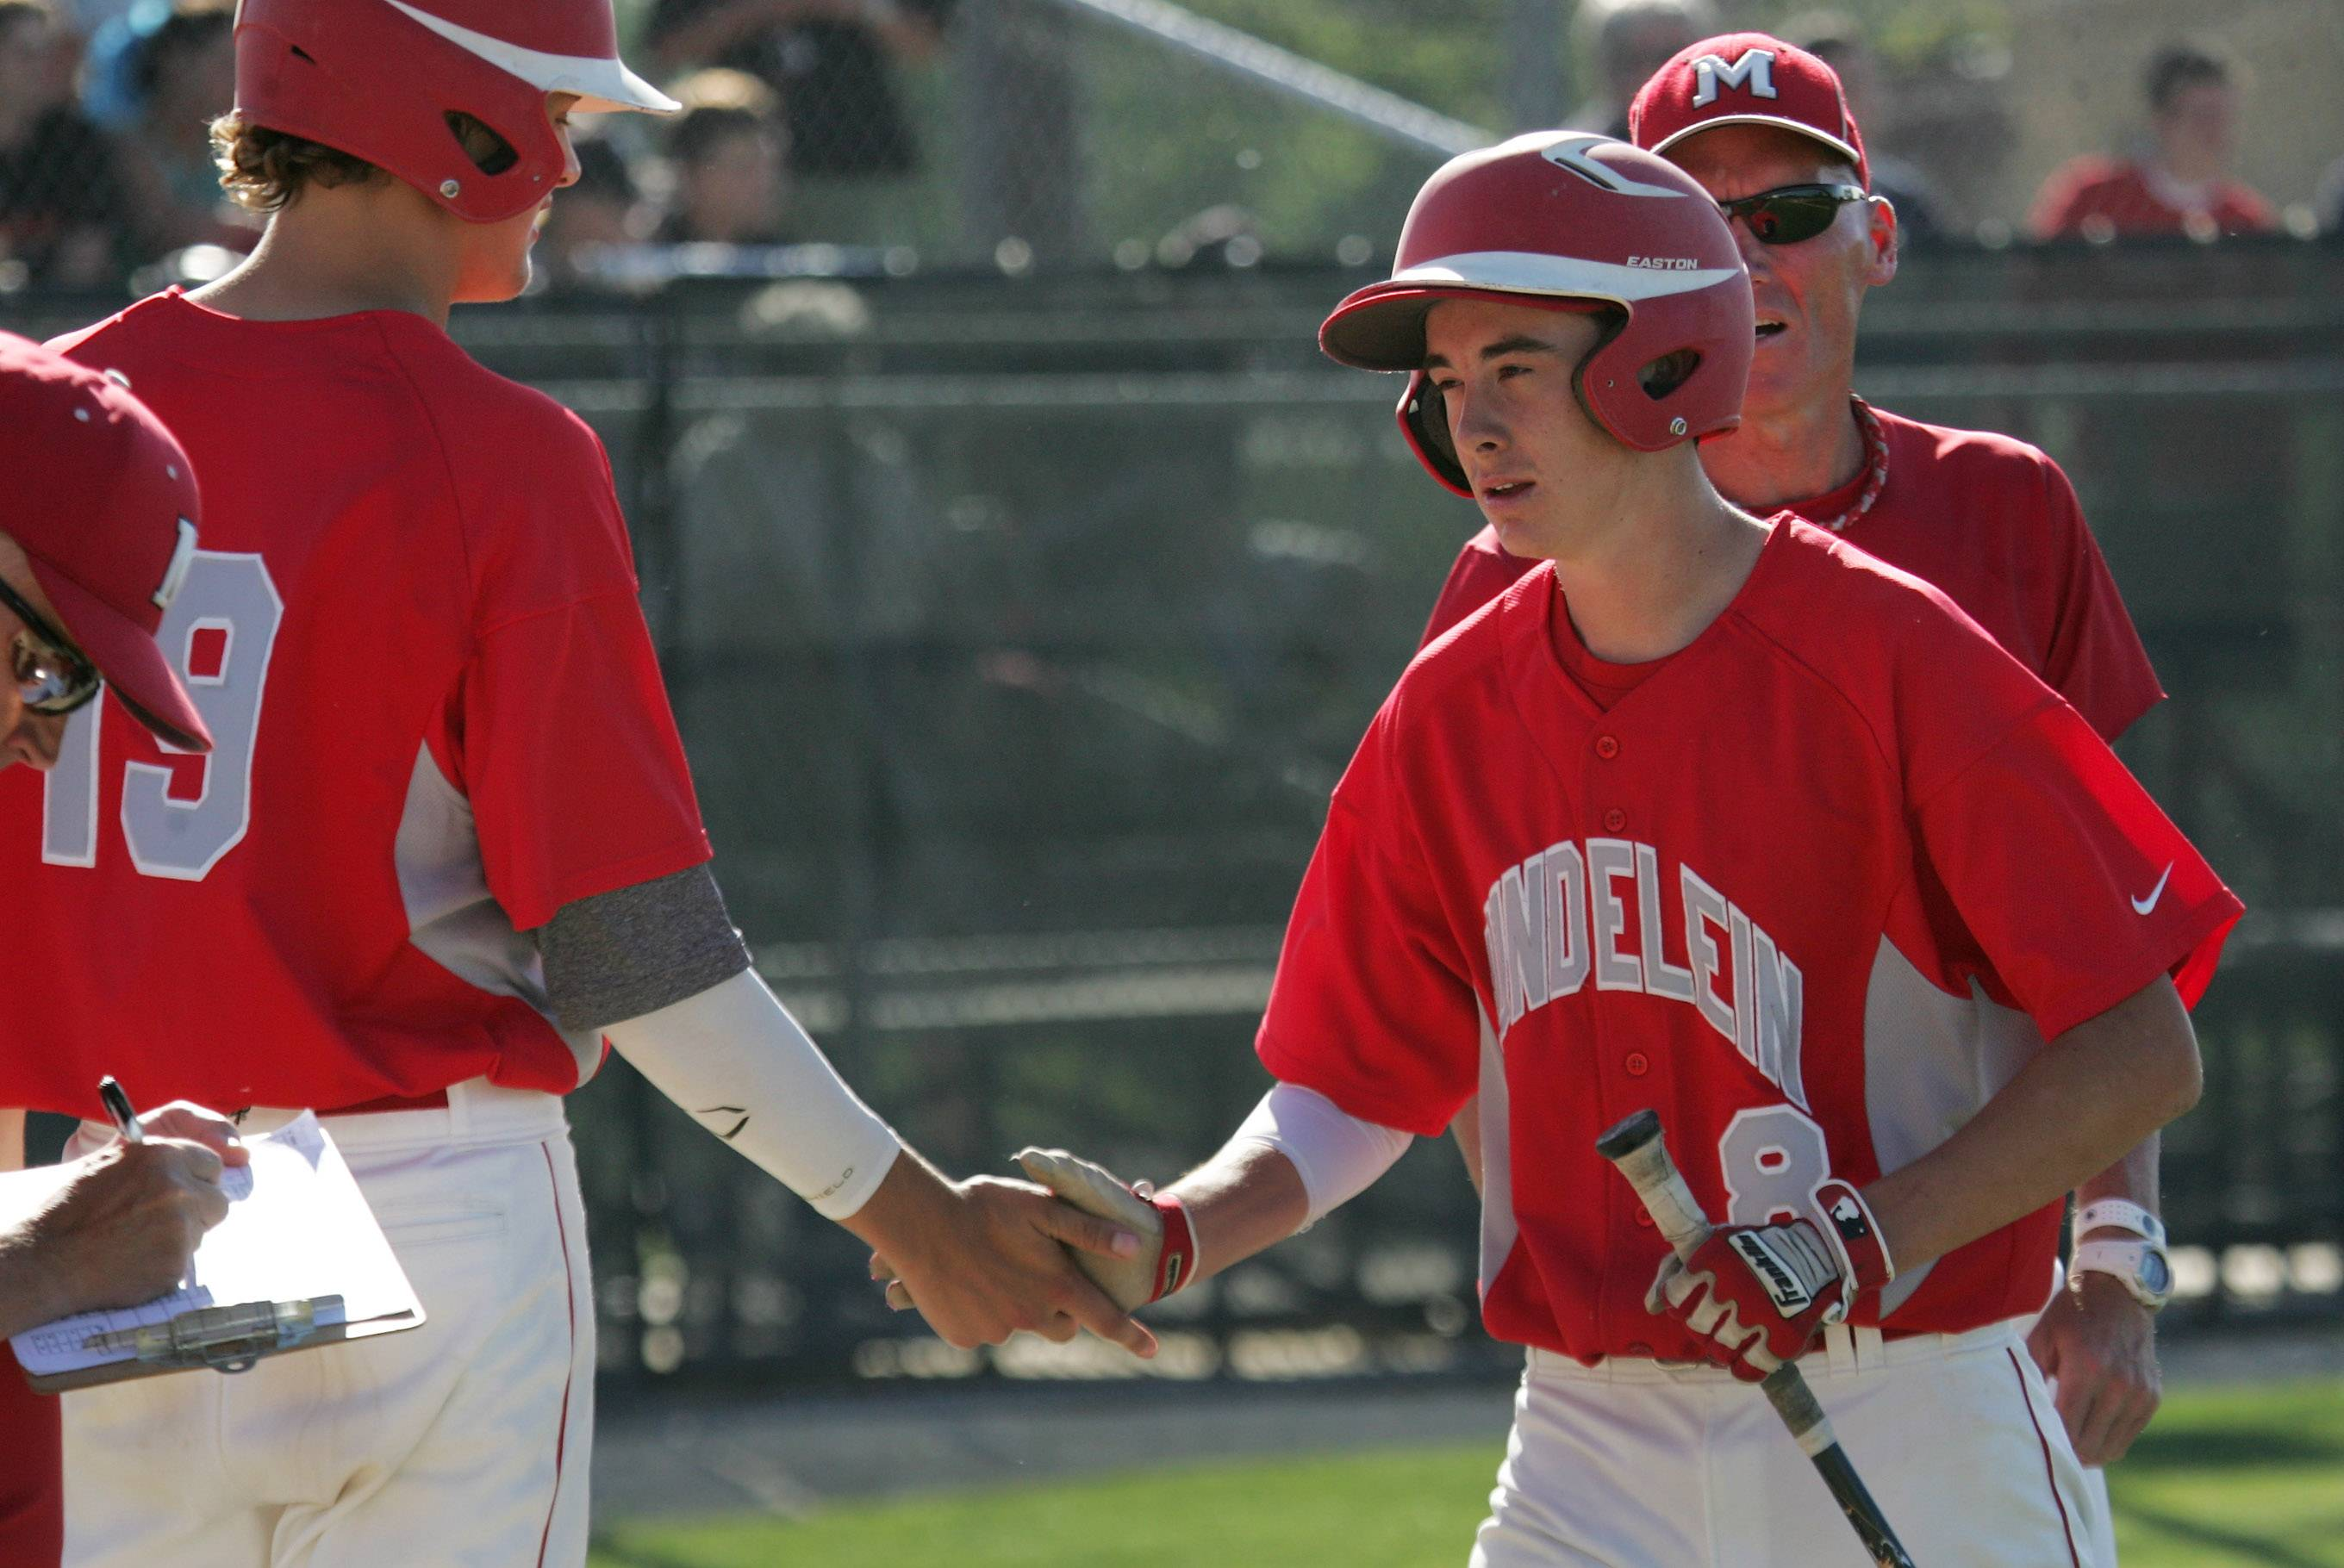 Mundelein's Derek Parola, right, is congratulated by teammate Reese Dolan after scoring against Glenbrook South in Class 4A regional play.